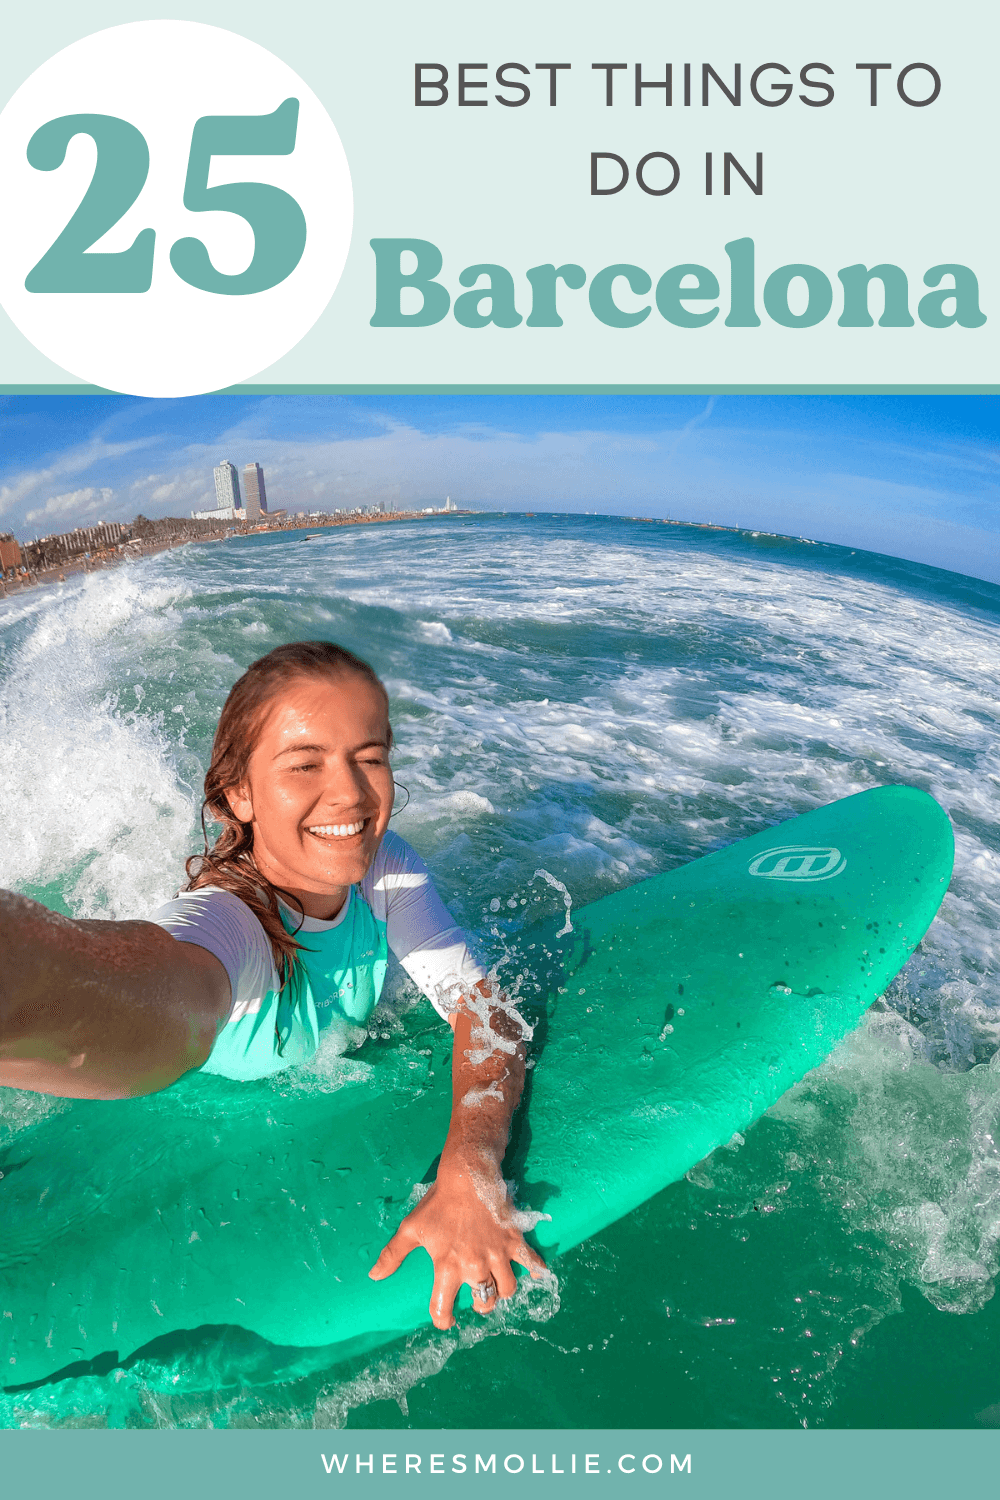 The best things to do in Barcelona, Spain